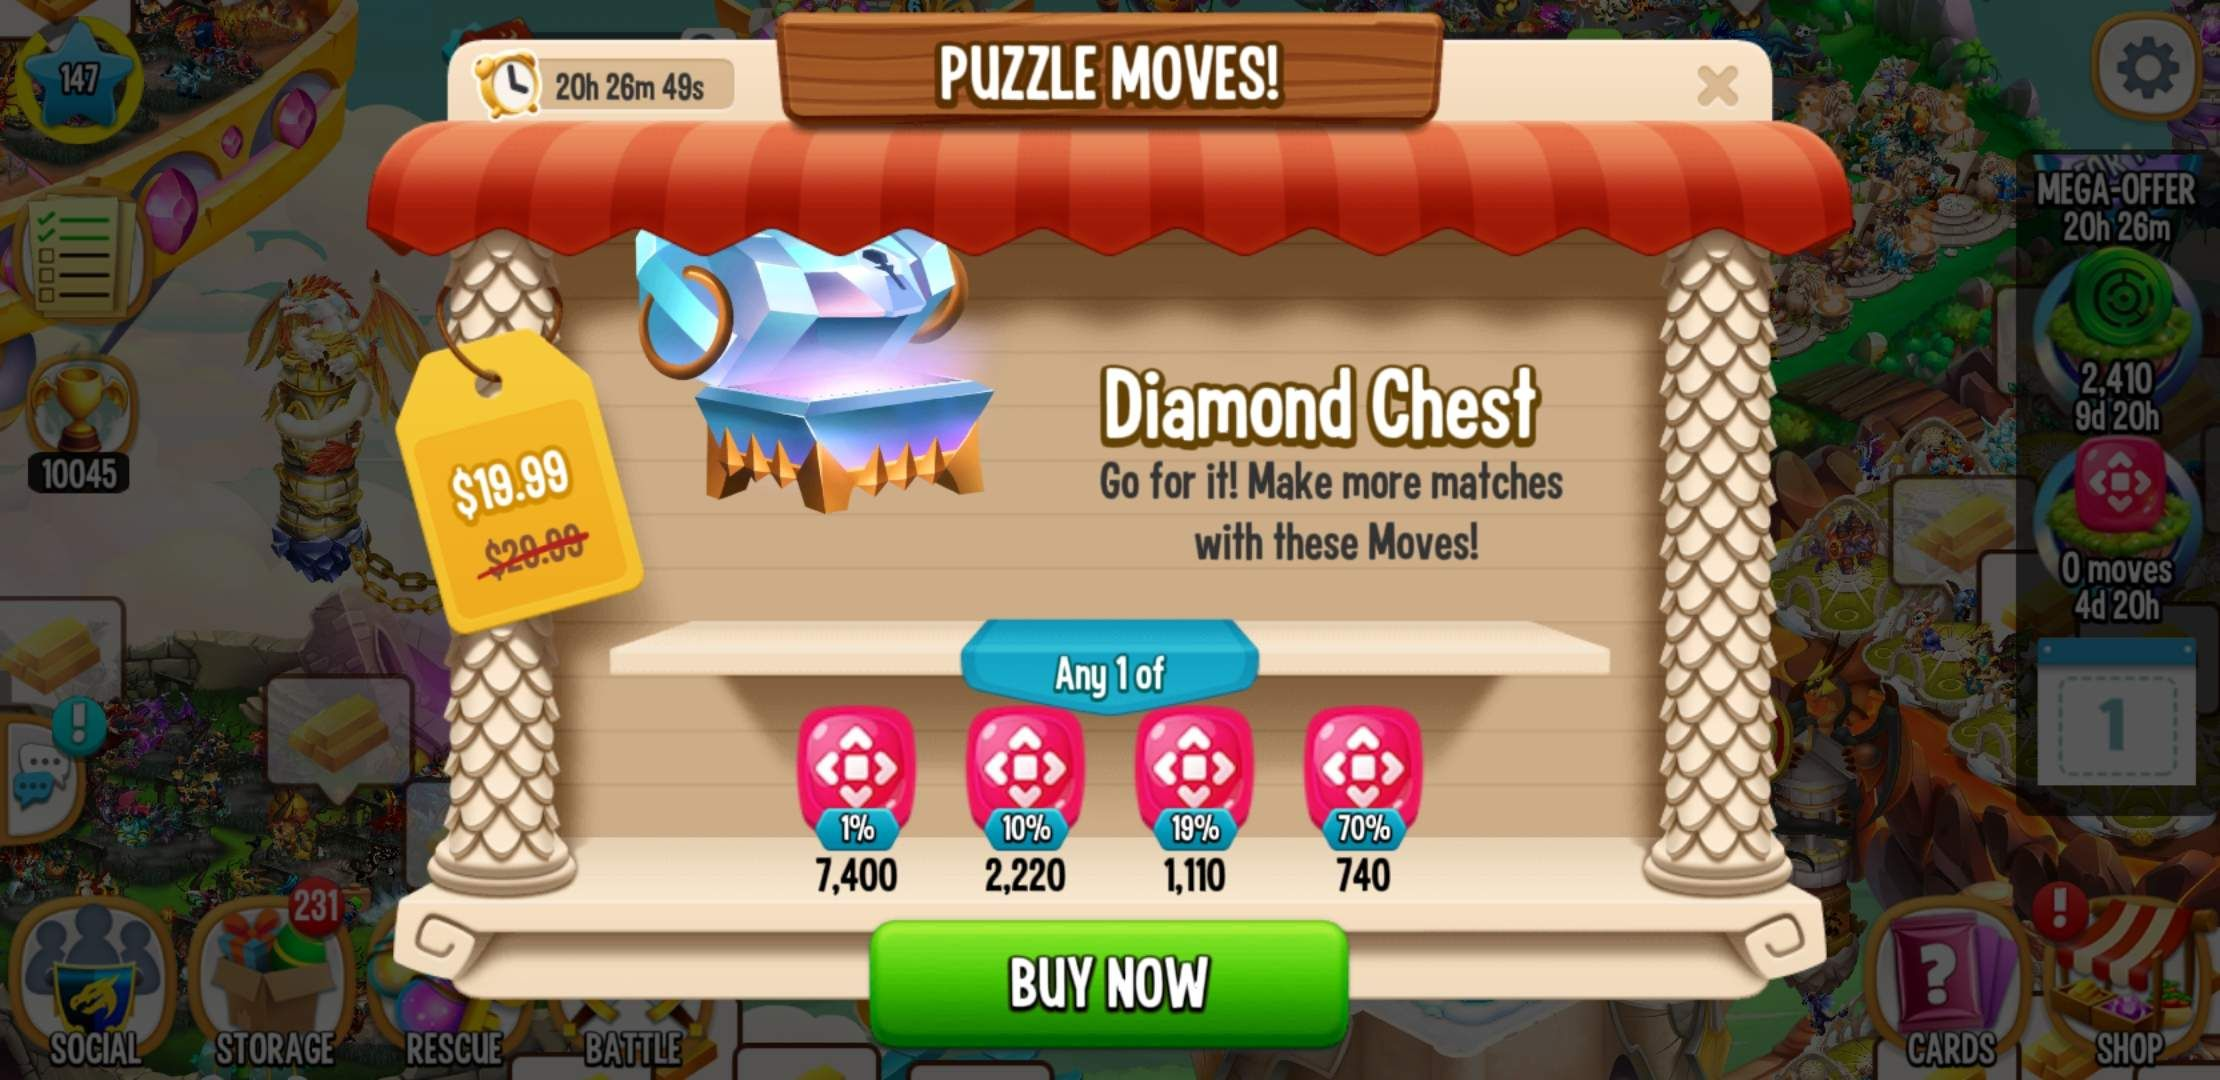 0_1596807424099_me puzzle chest offer.jpg